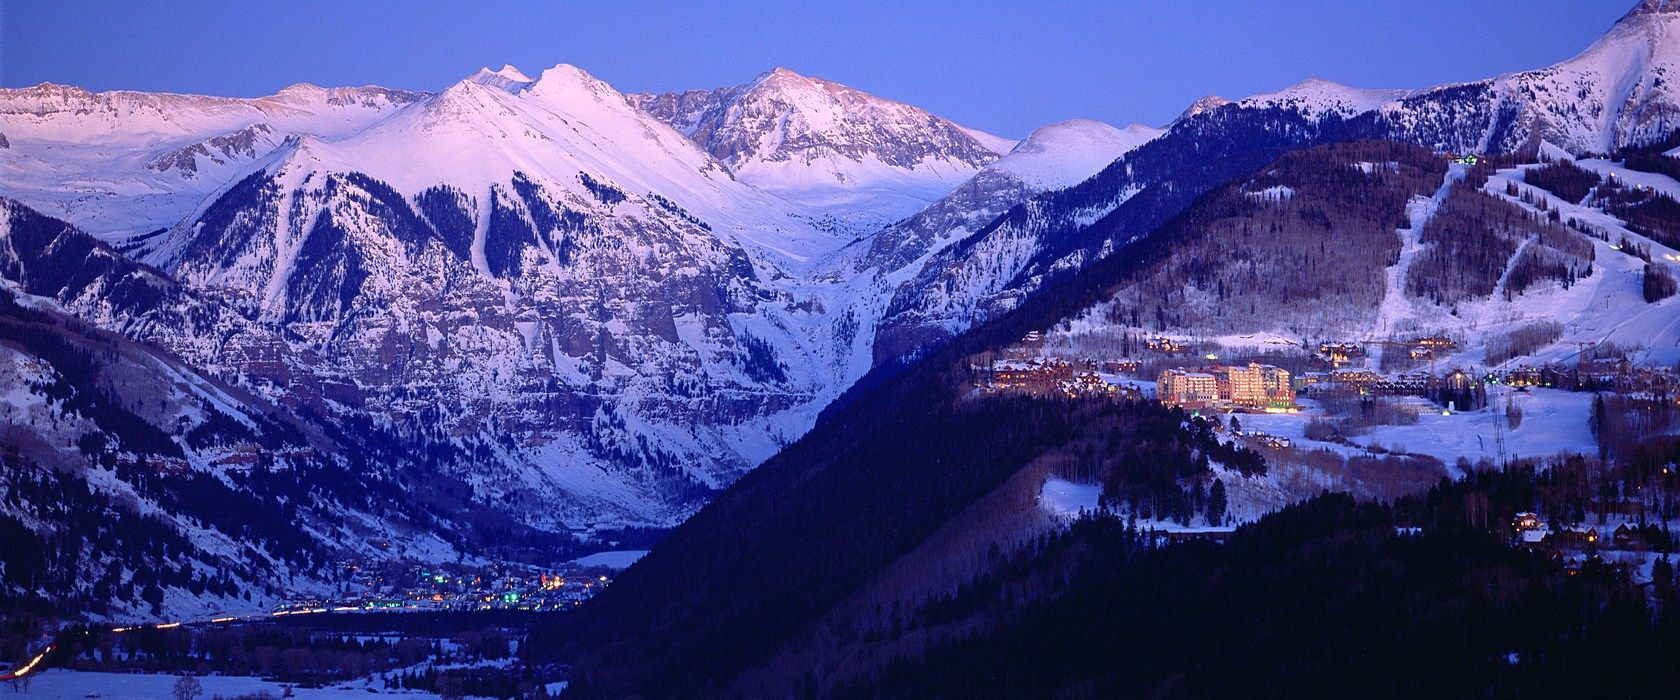 Telluride Hotels | Hotel Madeline Telluride | Telluride Colorado Luxury Resorts & Lodging